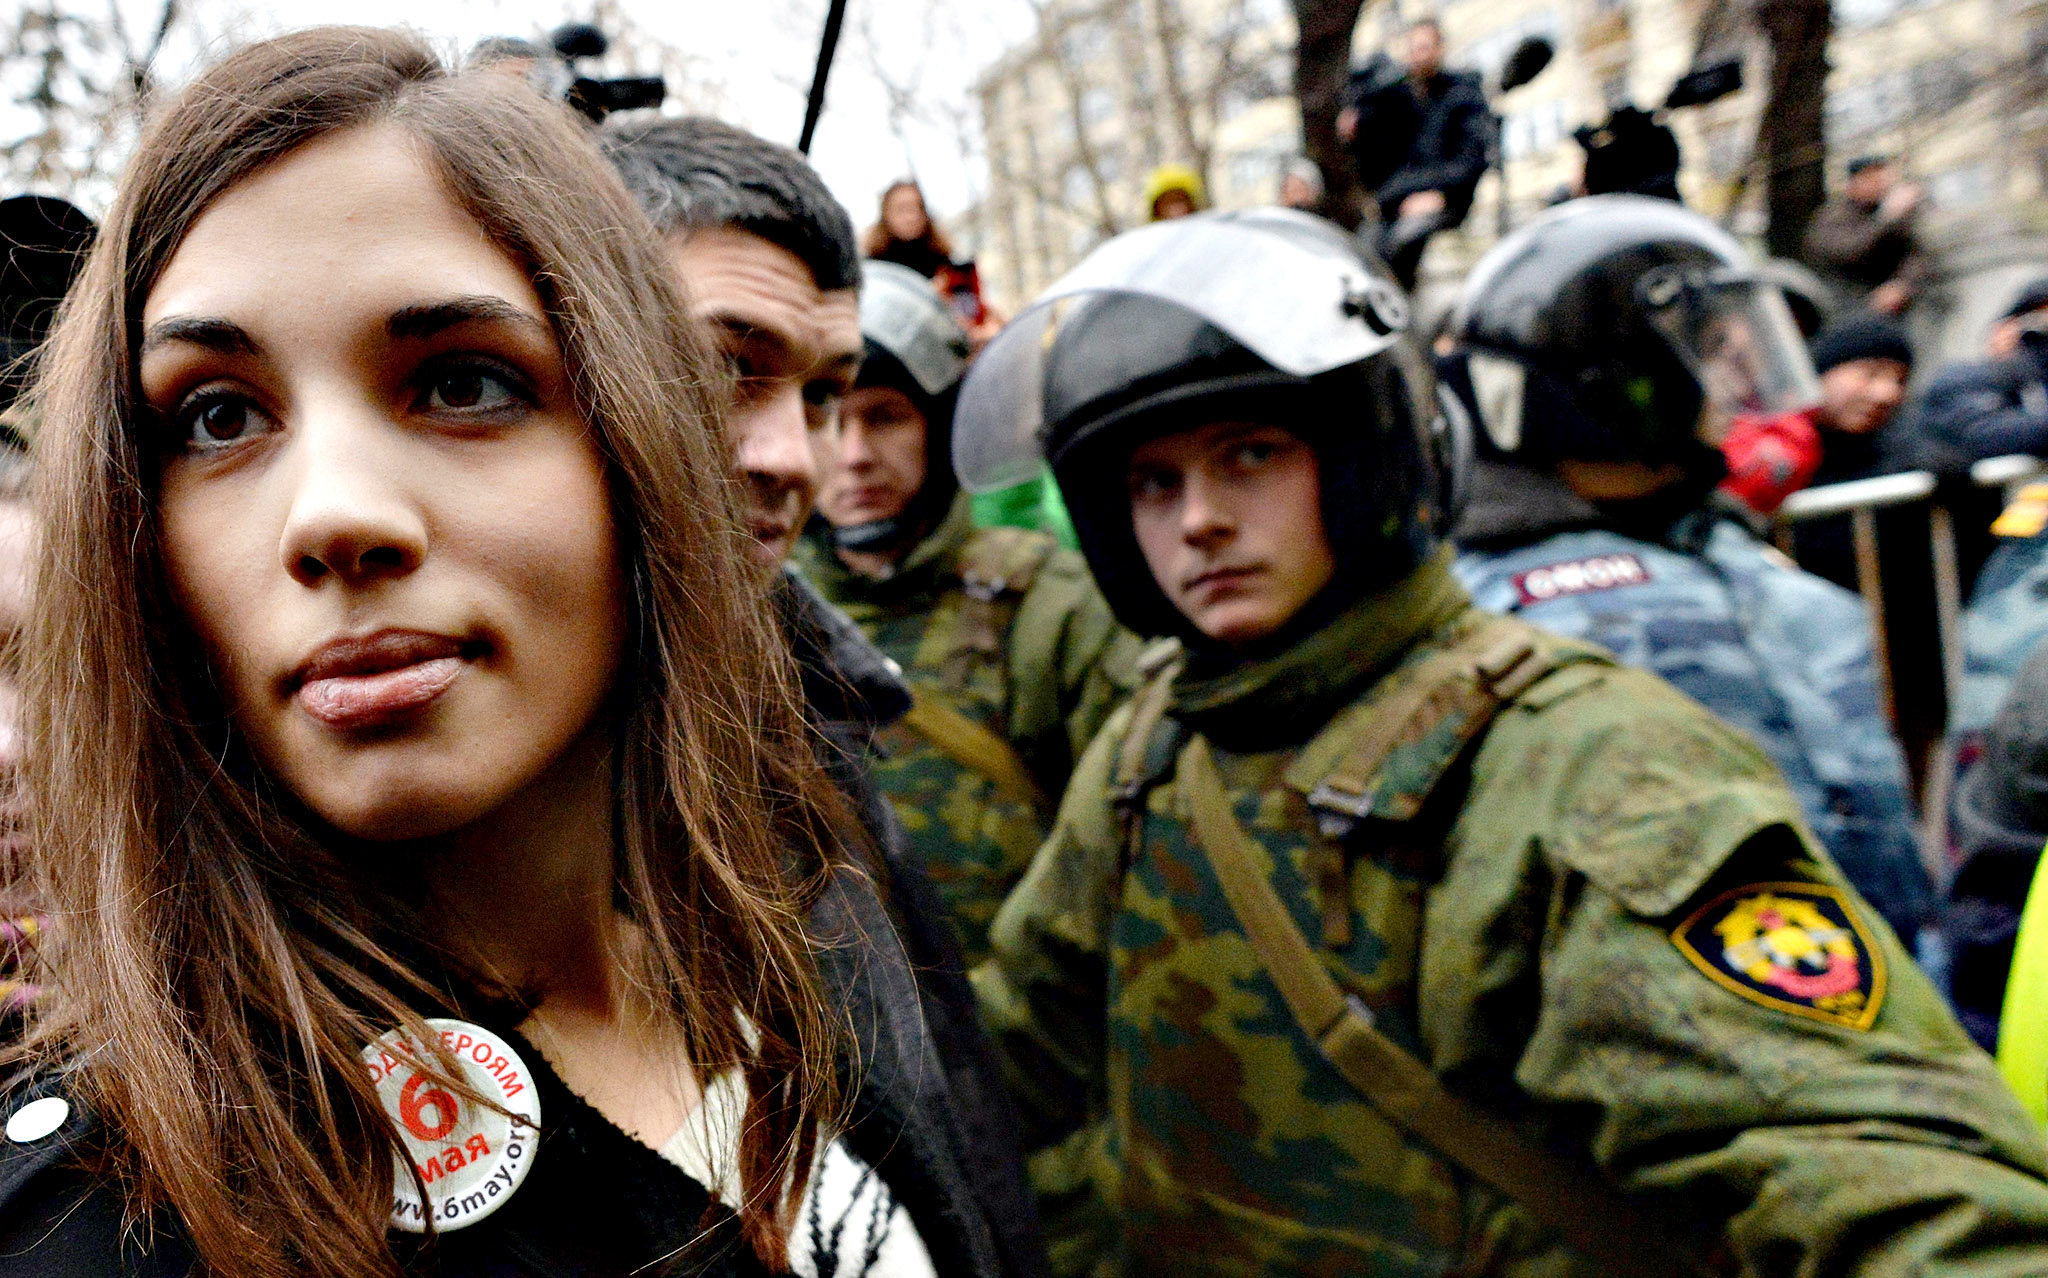 Russian punk group Pussy Riot member Nadezhda Tolokonnikova looks on as she stands outside Zamoskvoretsky district court in Moscow, on February 24, 2014, during a protest against the trial of eight people accused of instigating mass riots after an opposition rally on Moscow's on Bolotnaya square turned violent on the eve of Vladimir Putin's inauguration as president in 2012. A Russian court resumed today the sentencing of the eight anti-Putin protesters found guilty of mass riots as police detained dozens of people protesting against the trial.